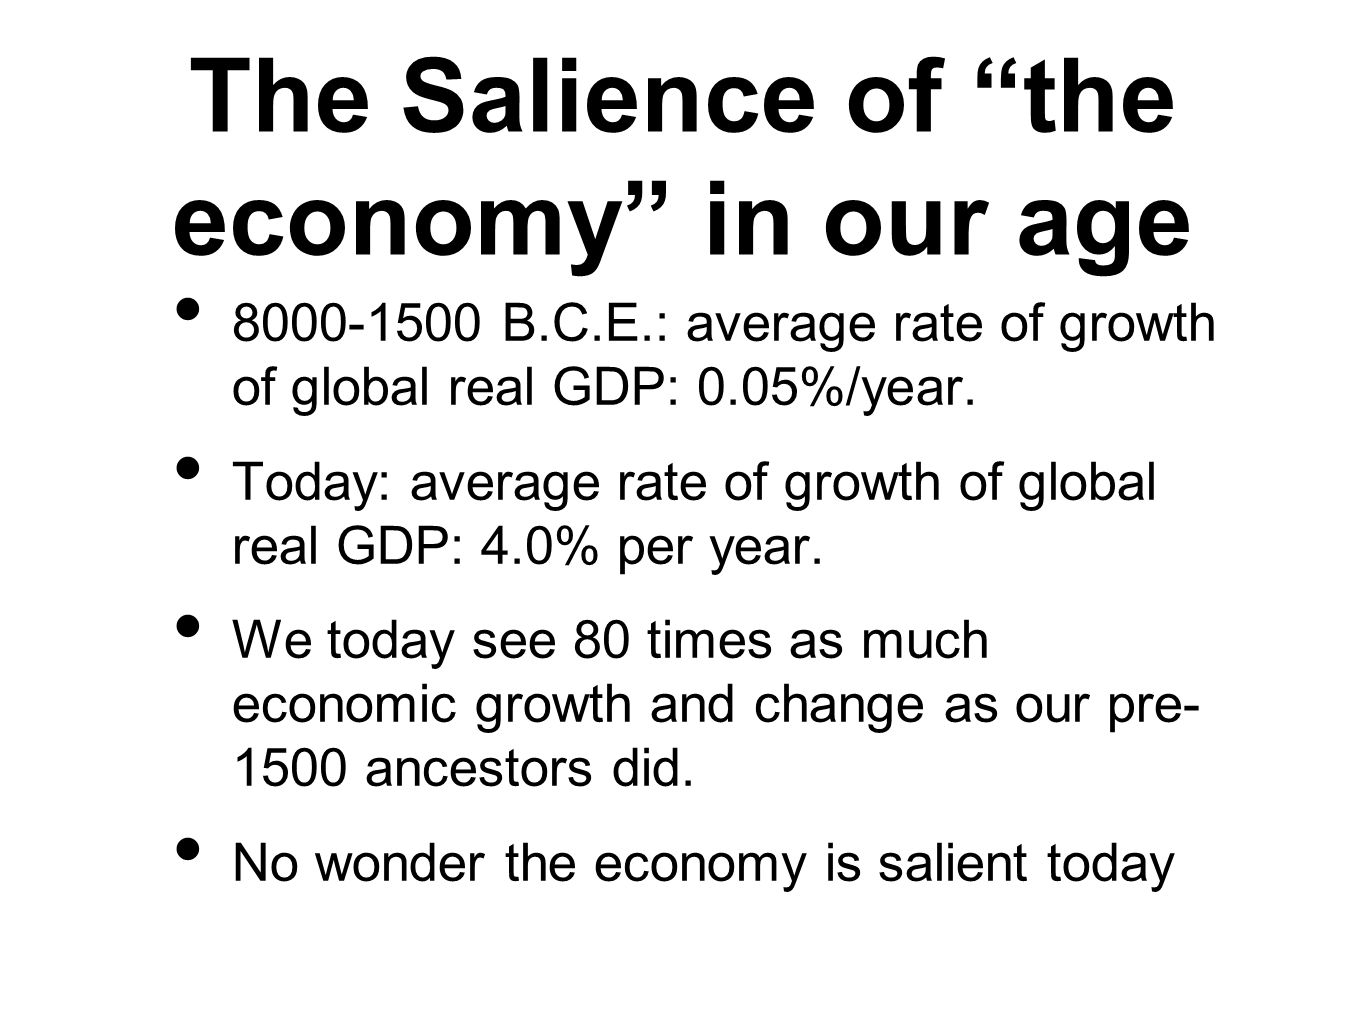 The Salience of the economy in our age 8000-1500 B.C.E.: average rate of growth of global real GDP: 0.05%/year.